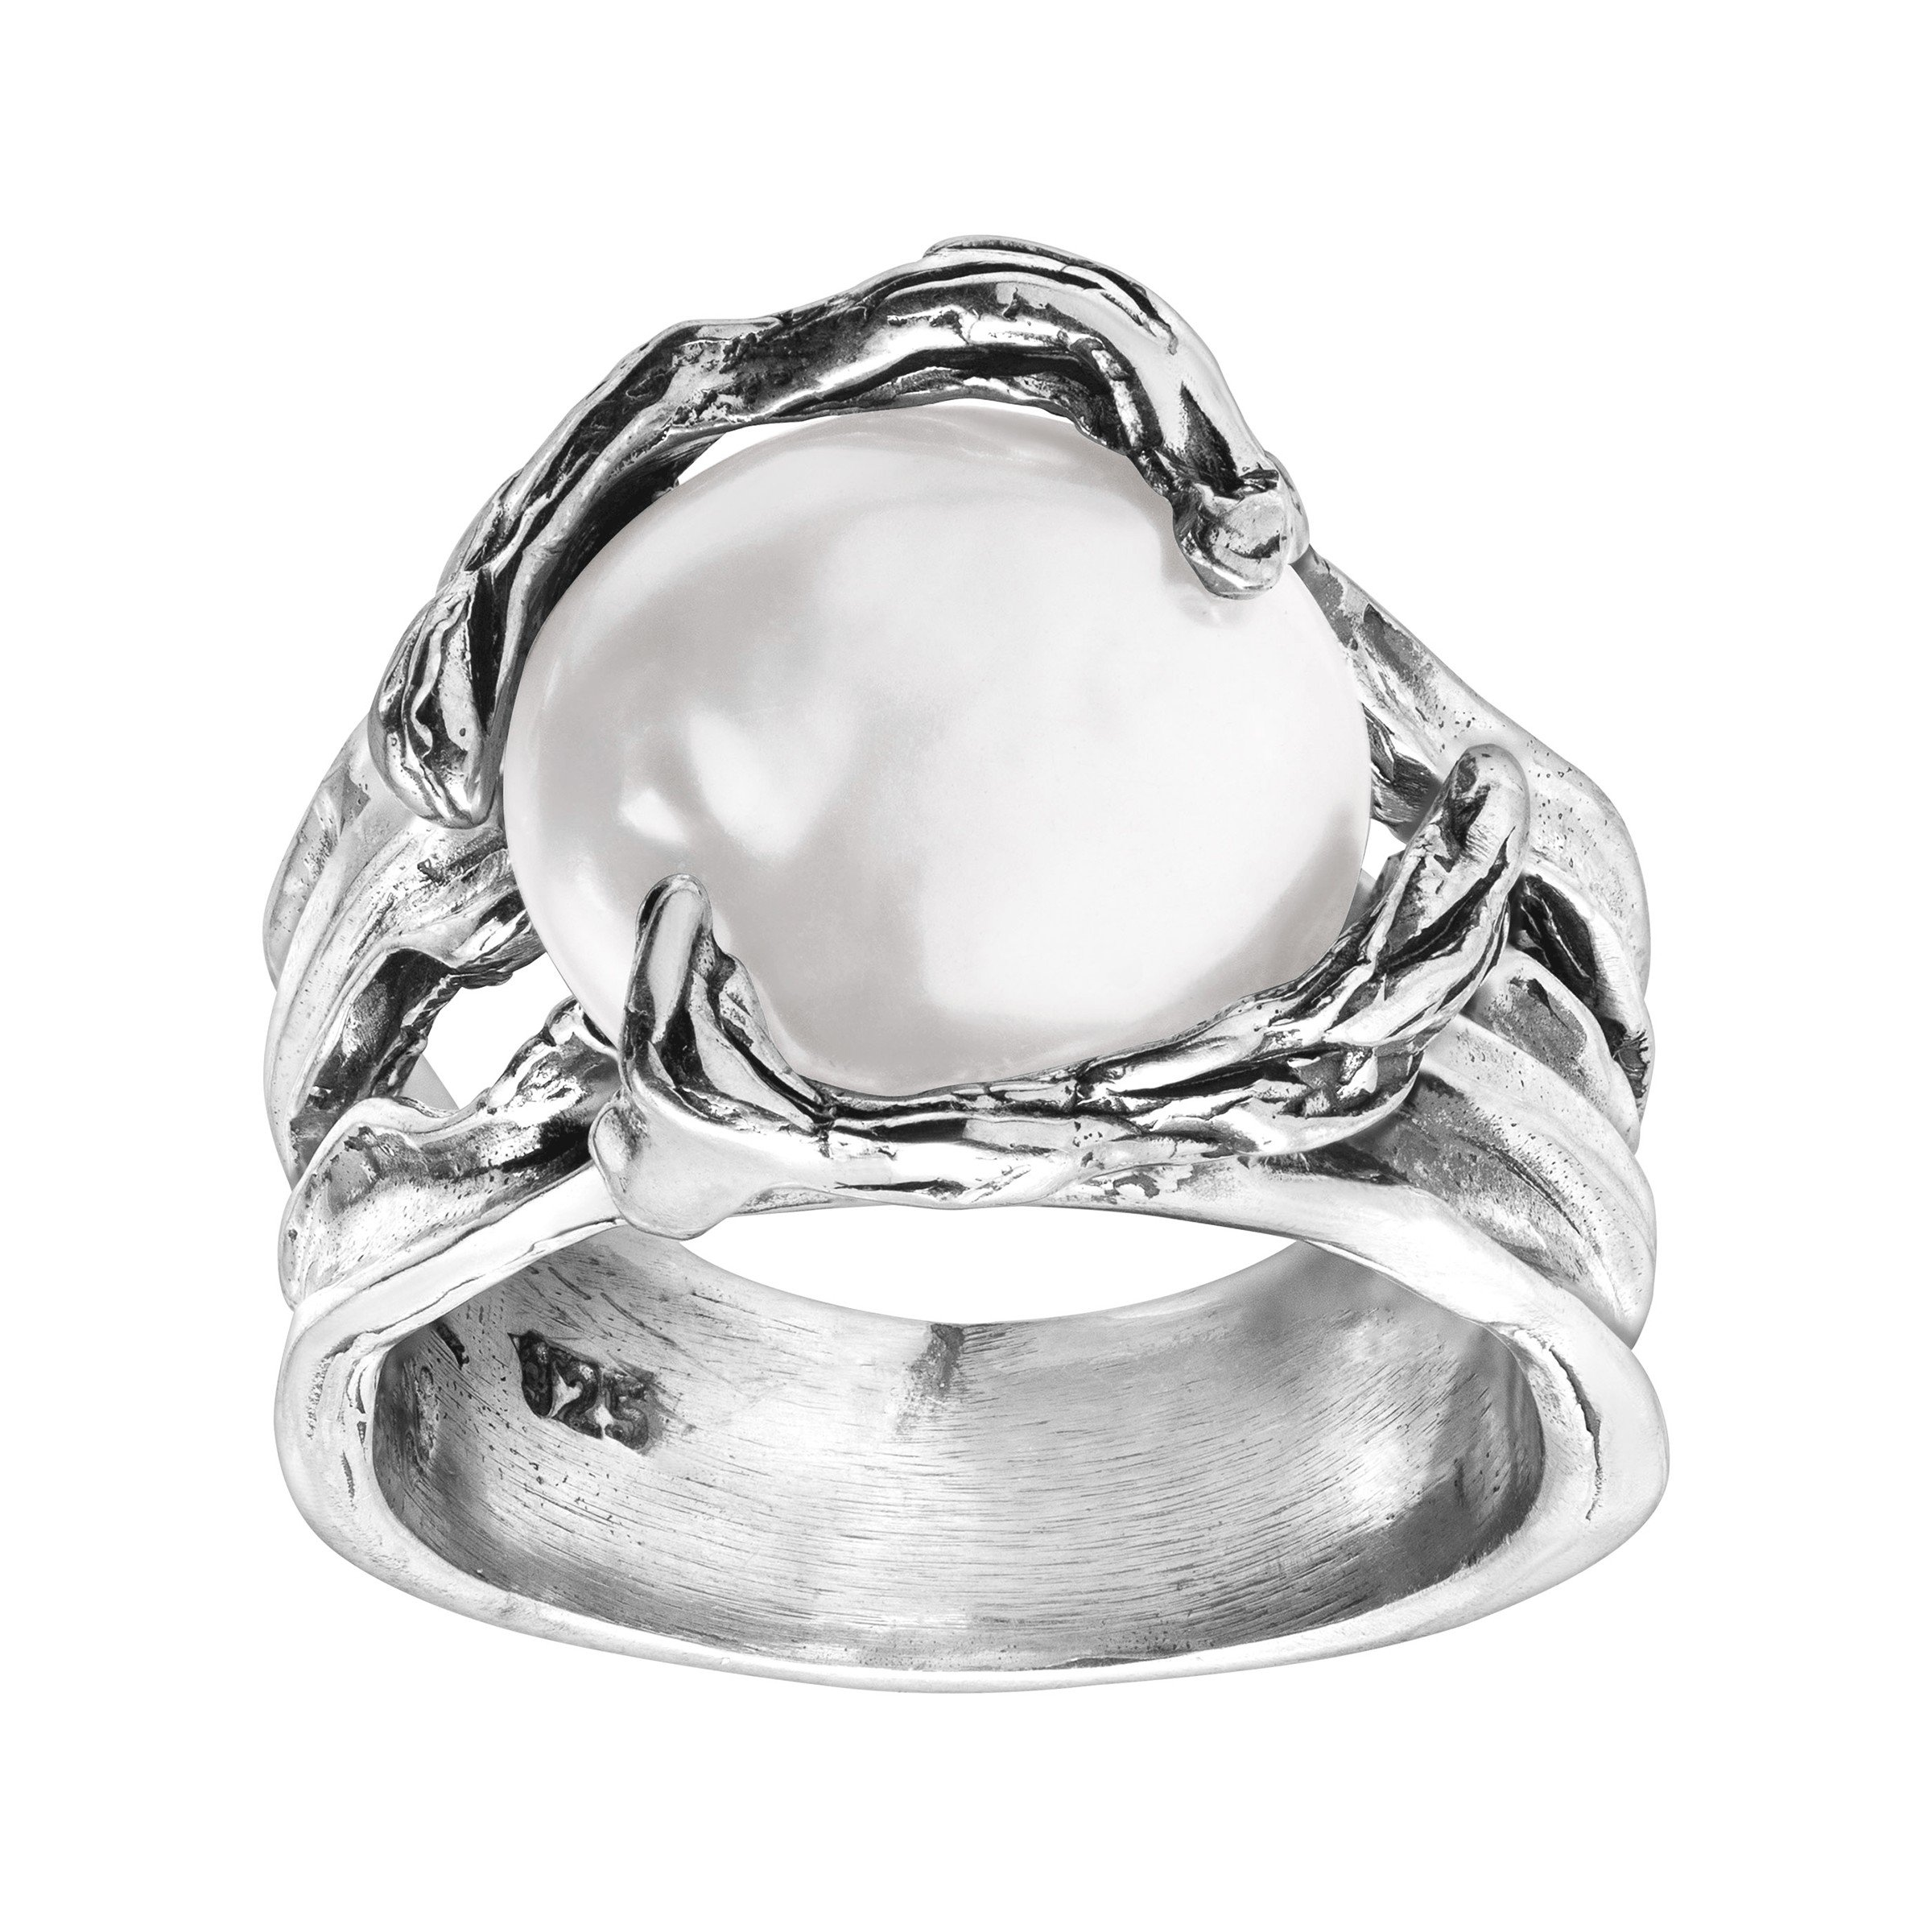 Silpada 'Branch Out' 14 mm Mother-of-Pearl Ring in Sterling Silver